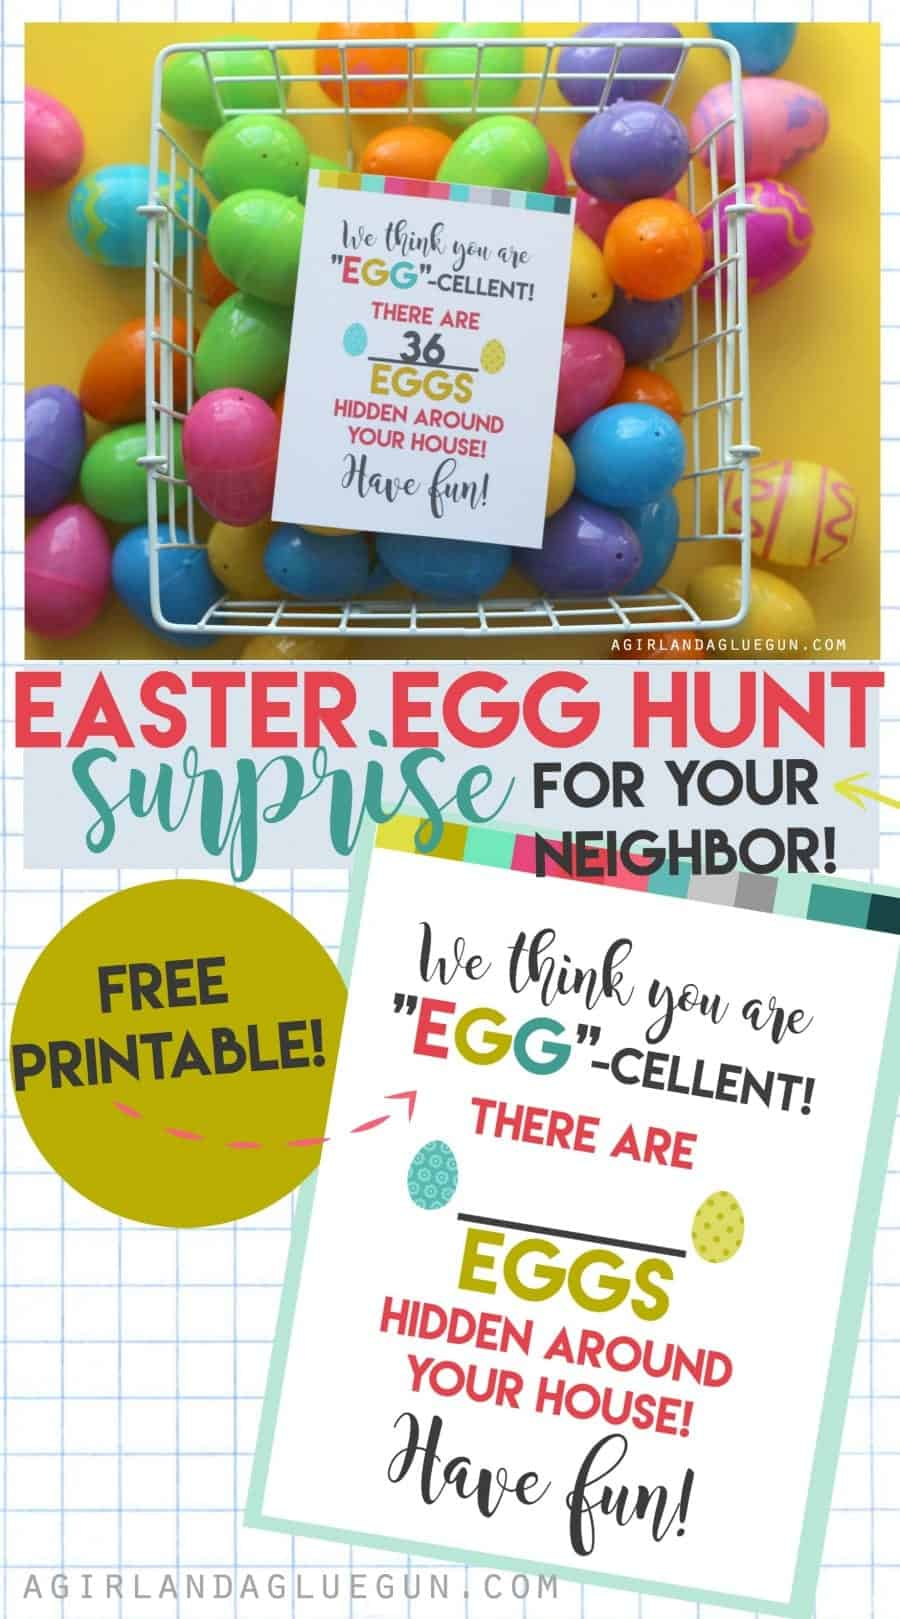 Easter egg hunt surprise for your neighbor. such a fun idea!--with free printable